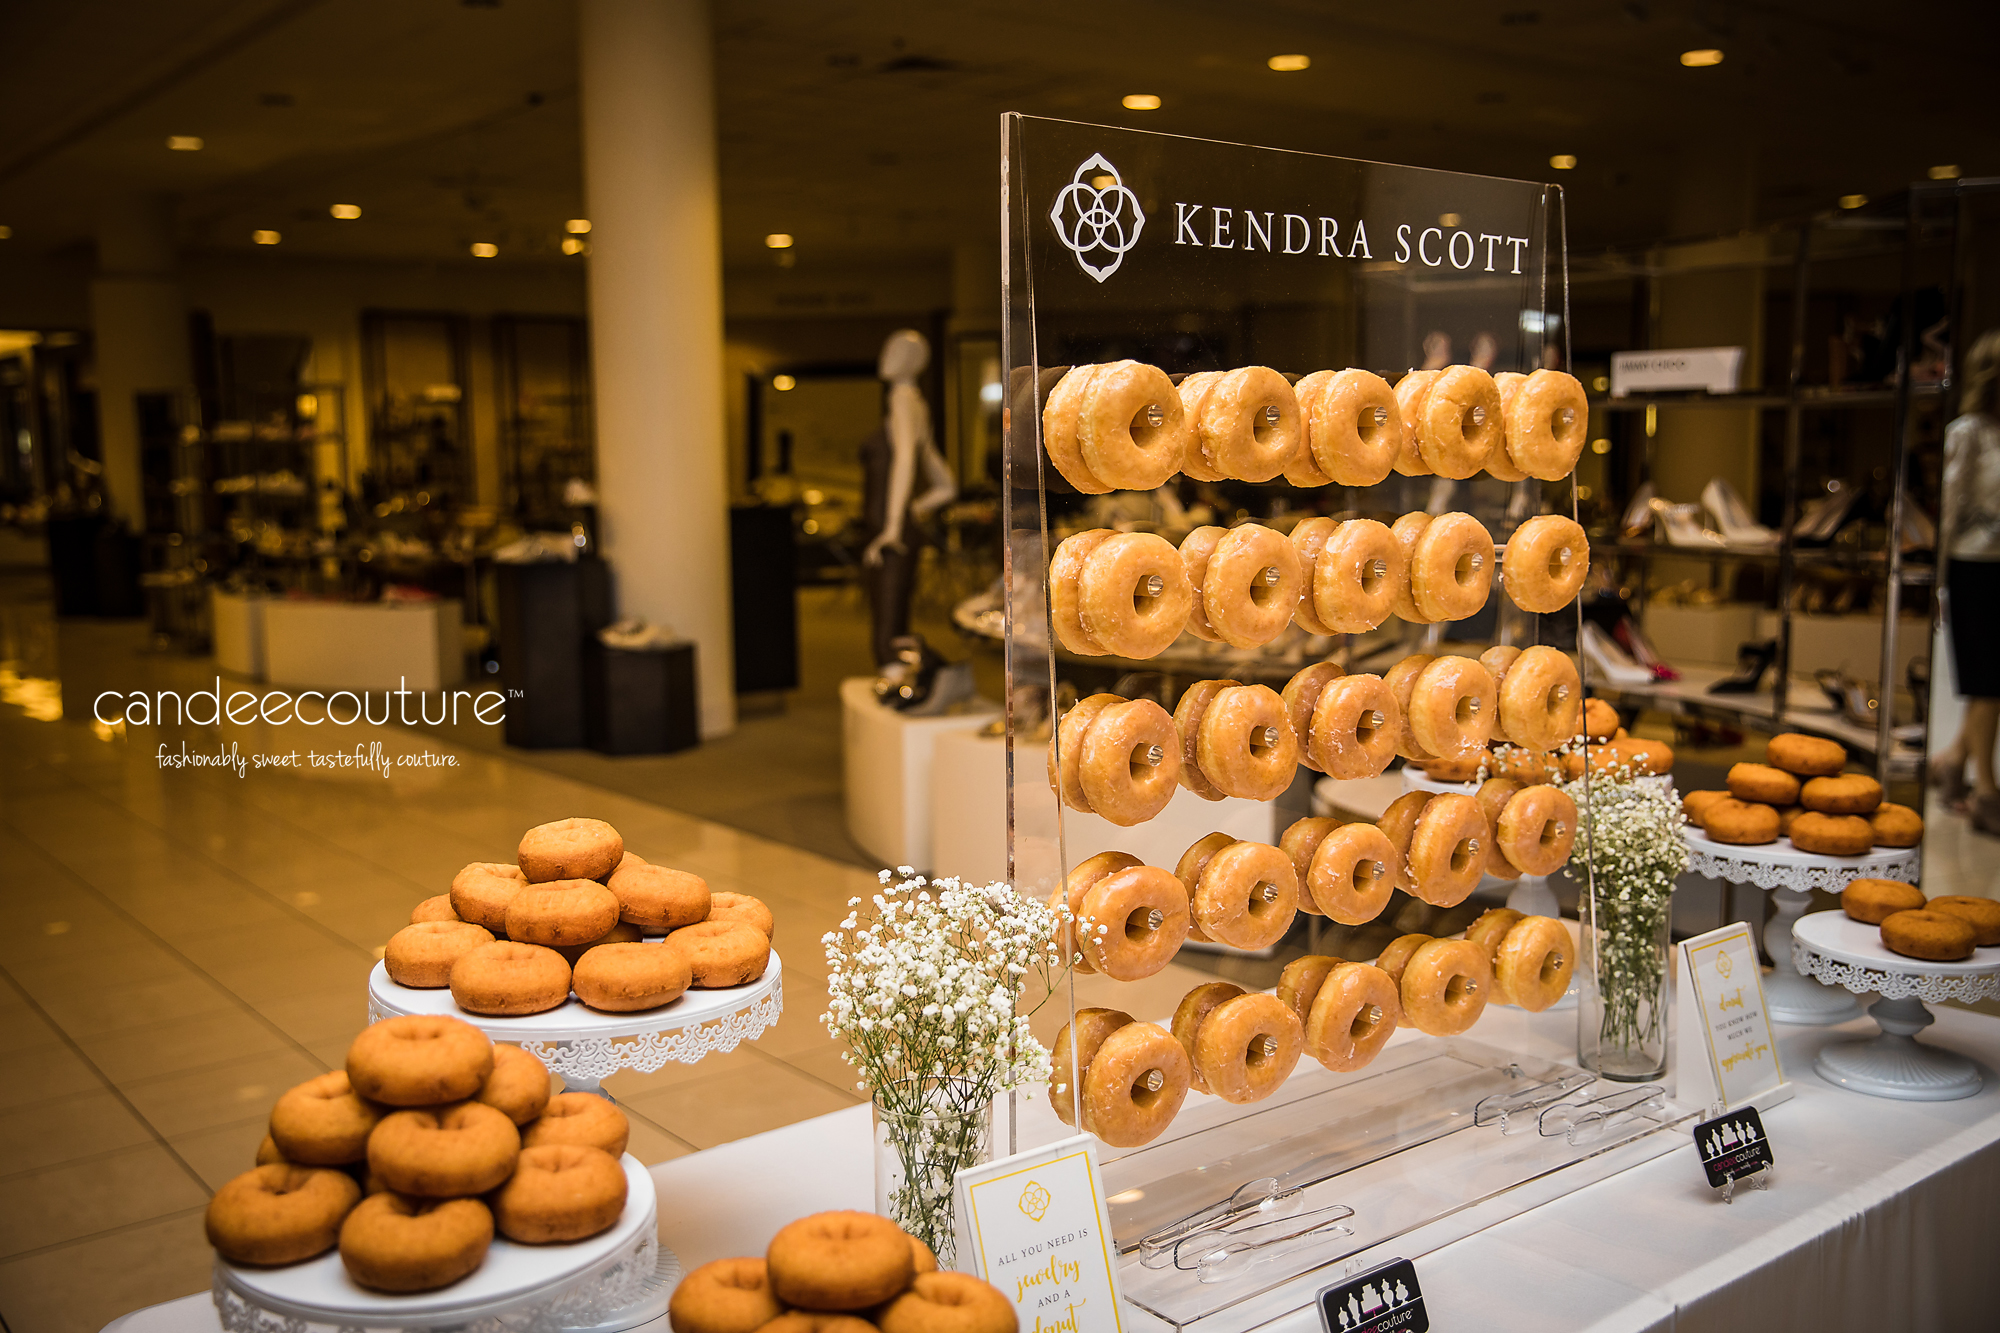 Donut Bar, Kendra Scott Donut Wall, Kendra Scott, Donut Wall, Nordstrom, NorthPark Center, corporate event